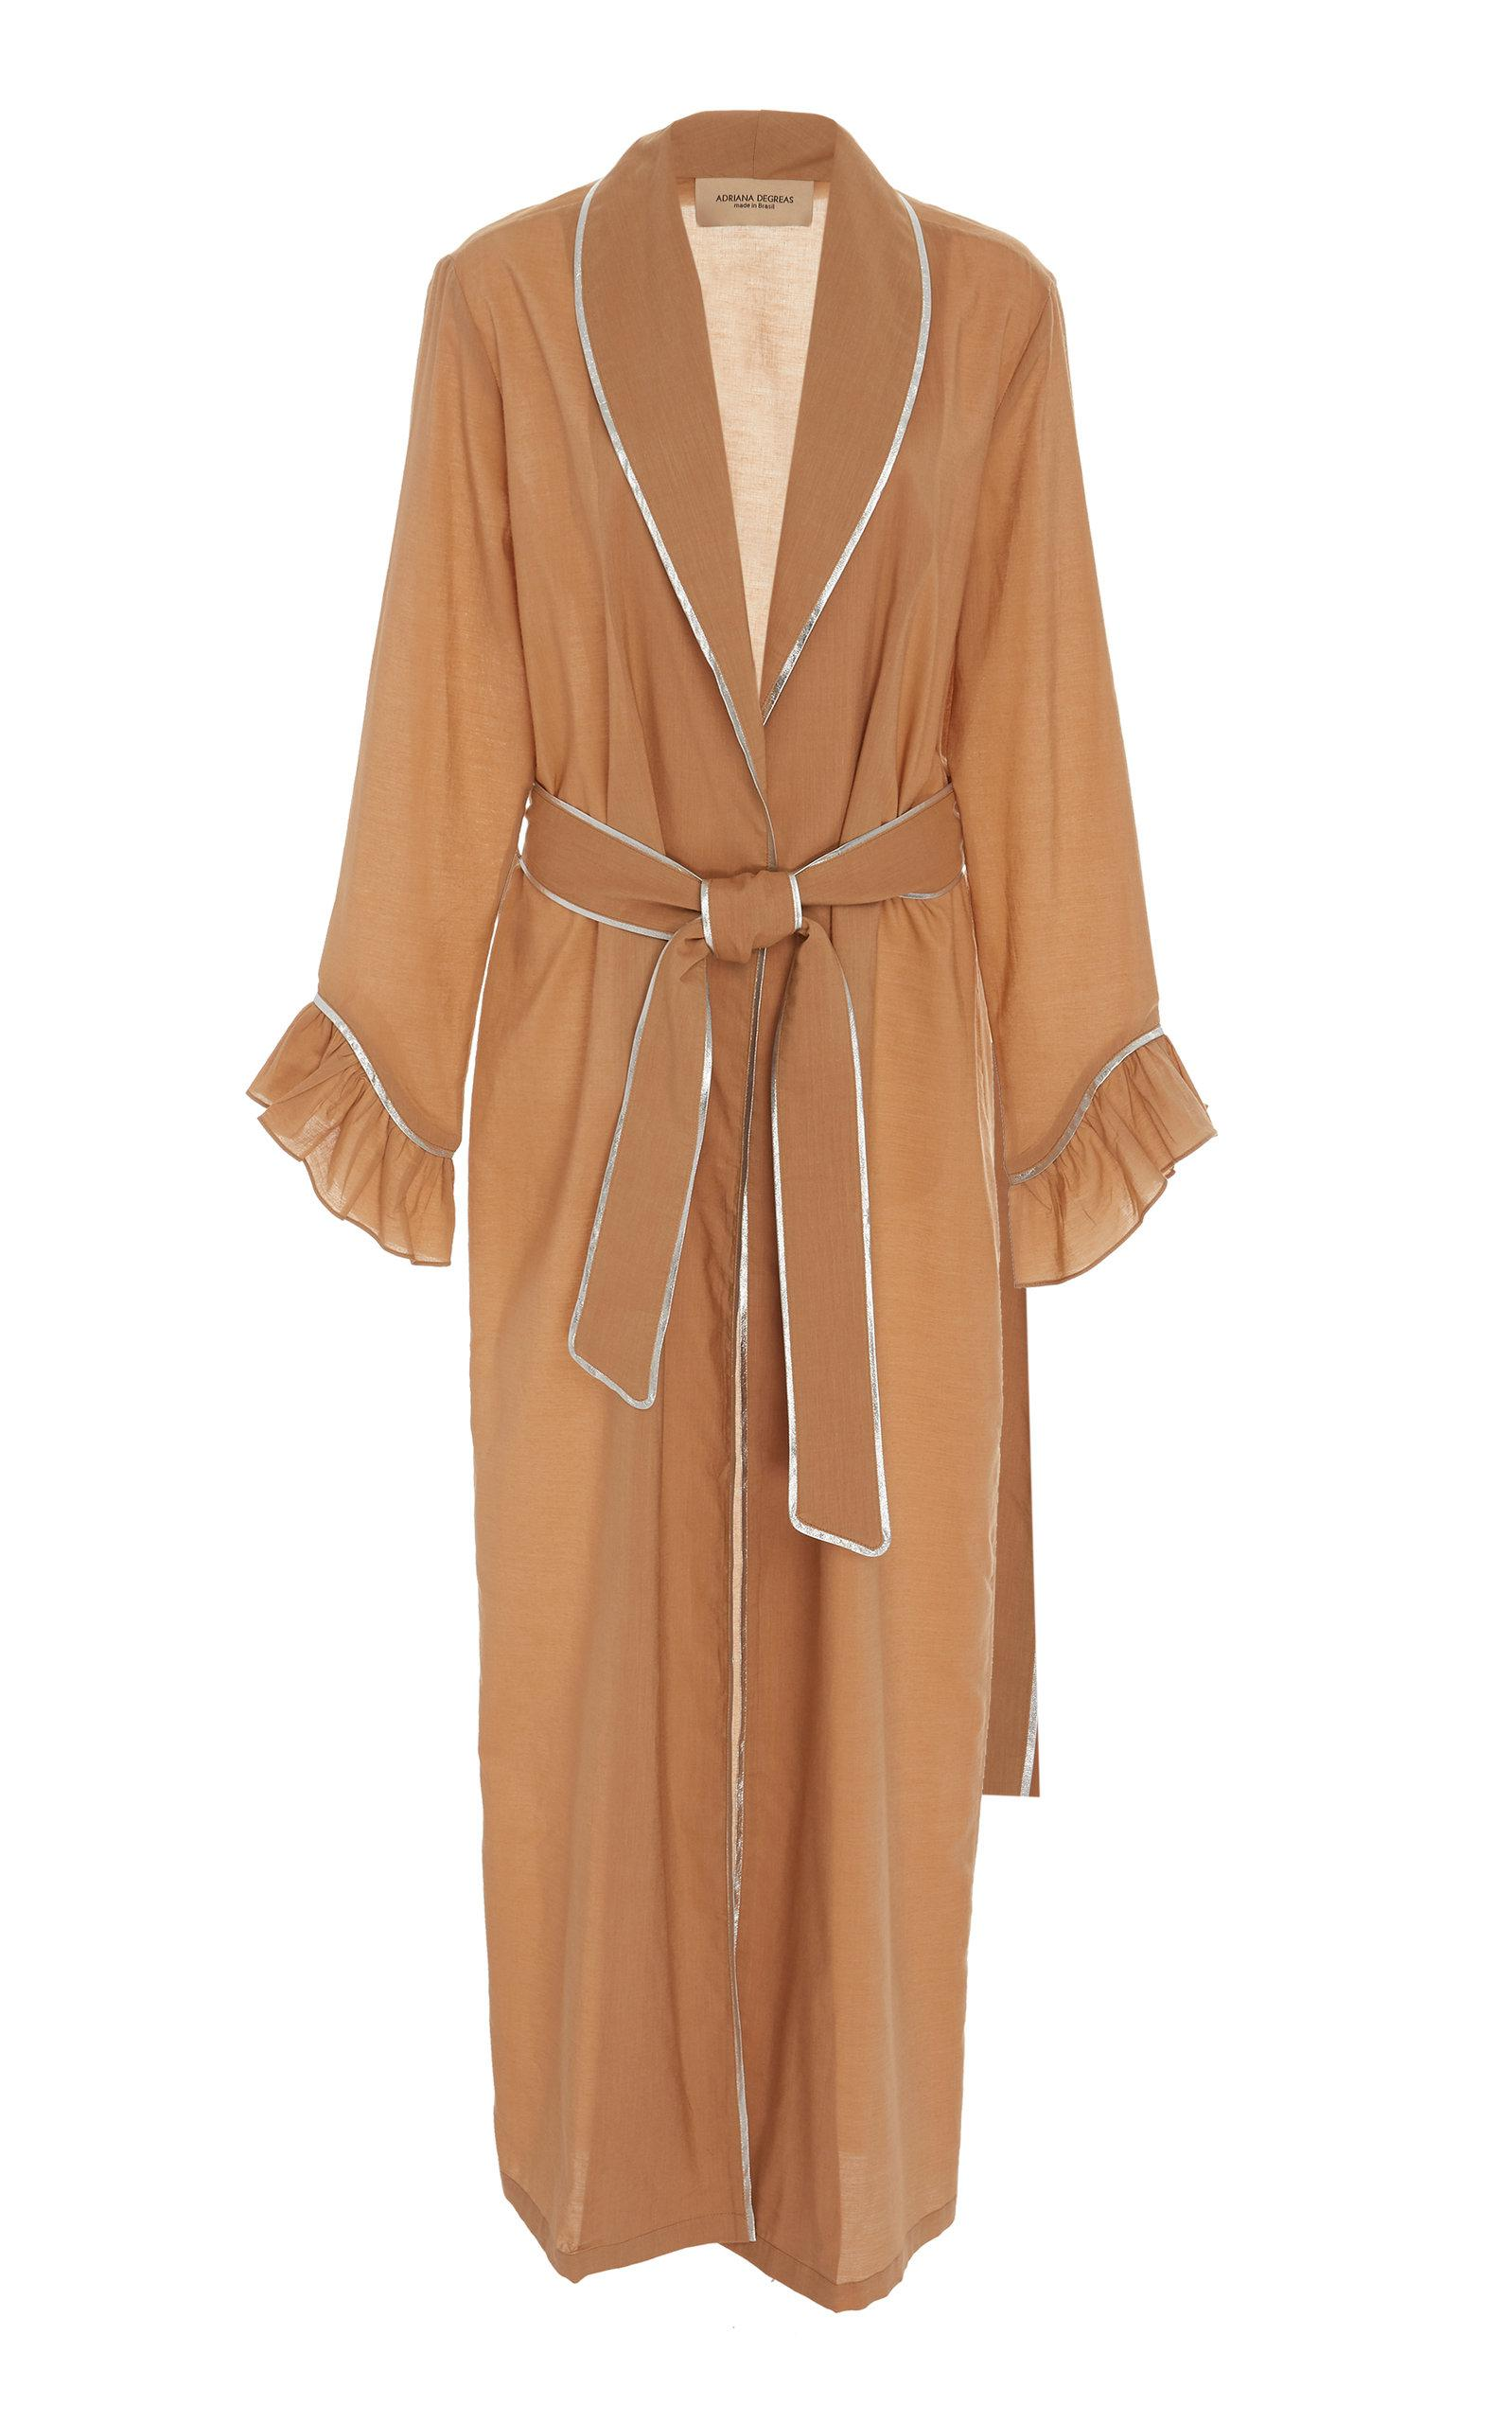 Degreas Lyst Sheer Blend Cotton Adriana Maxi Brown Robe In DEHI29